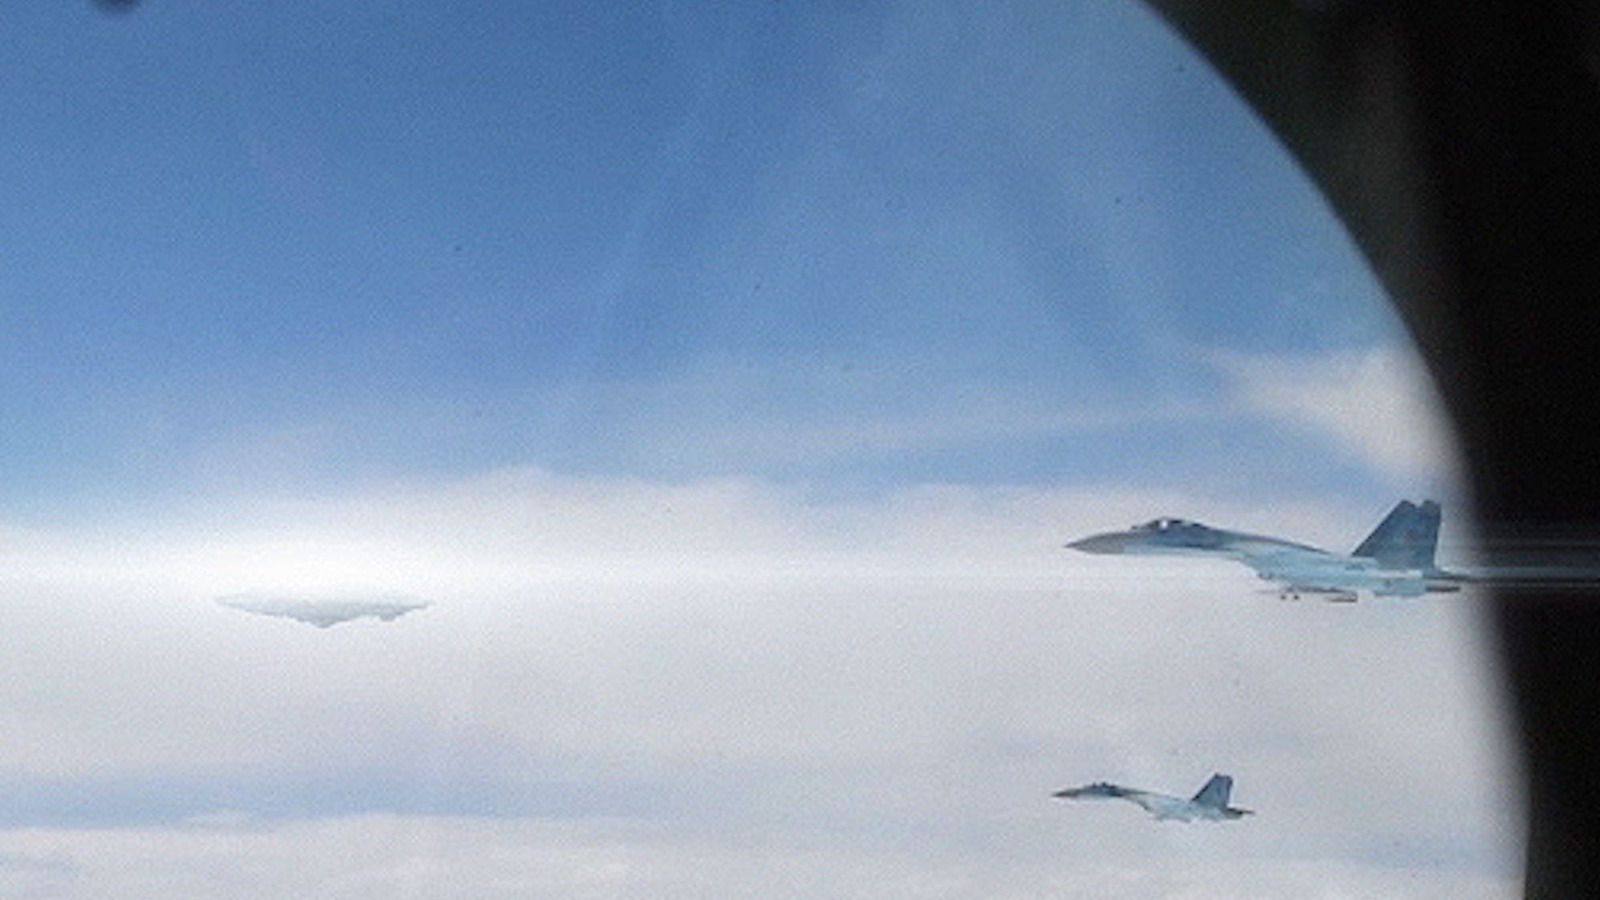 UFO Sighting : UFO Chased by MIG-29 Fighter Jets in Russia 👽